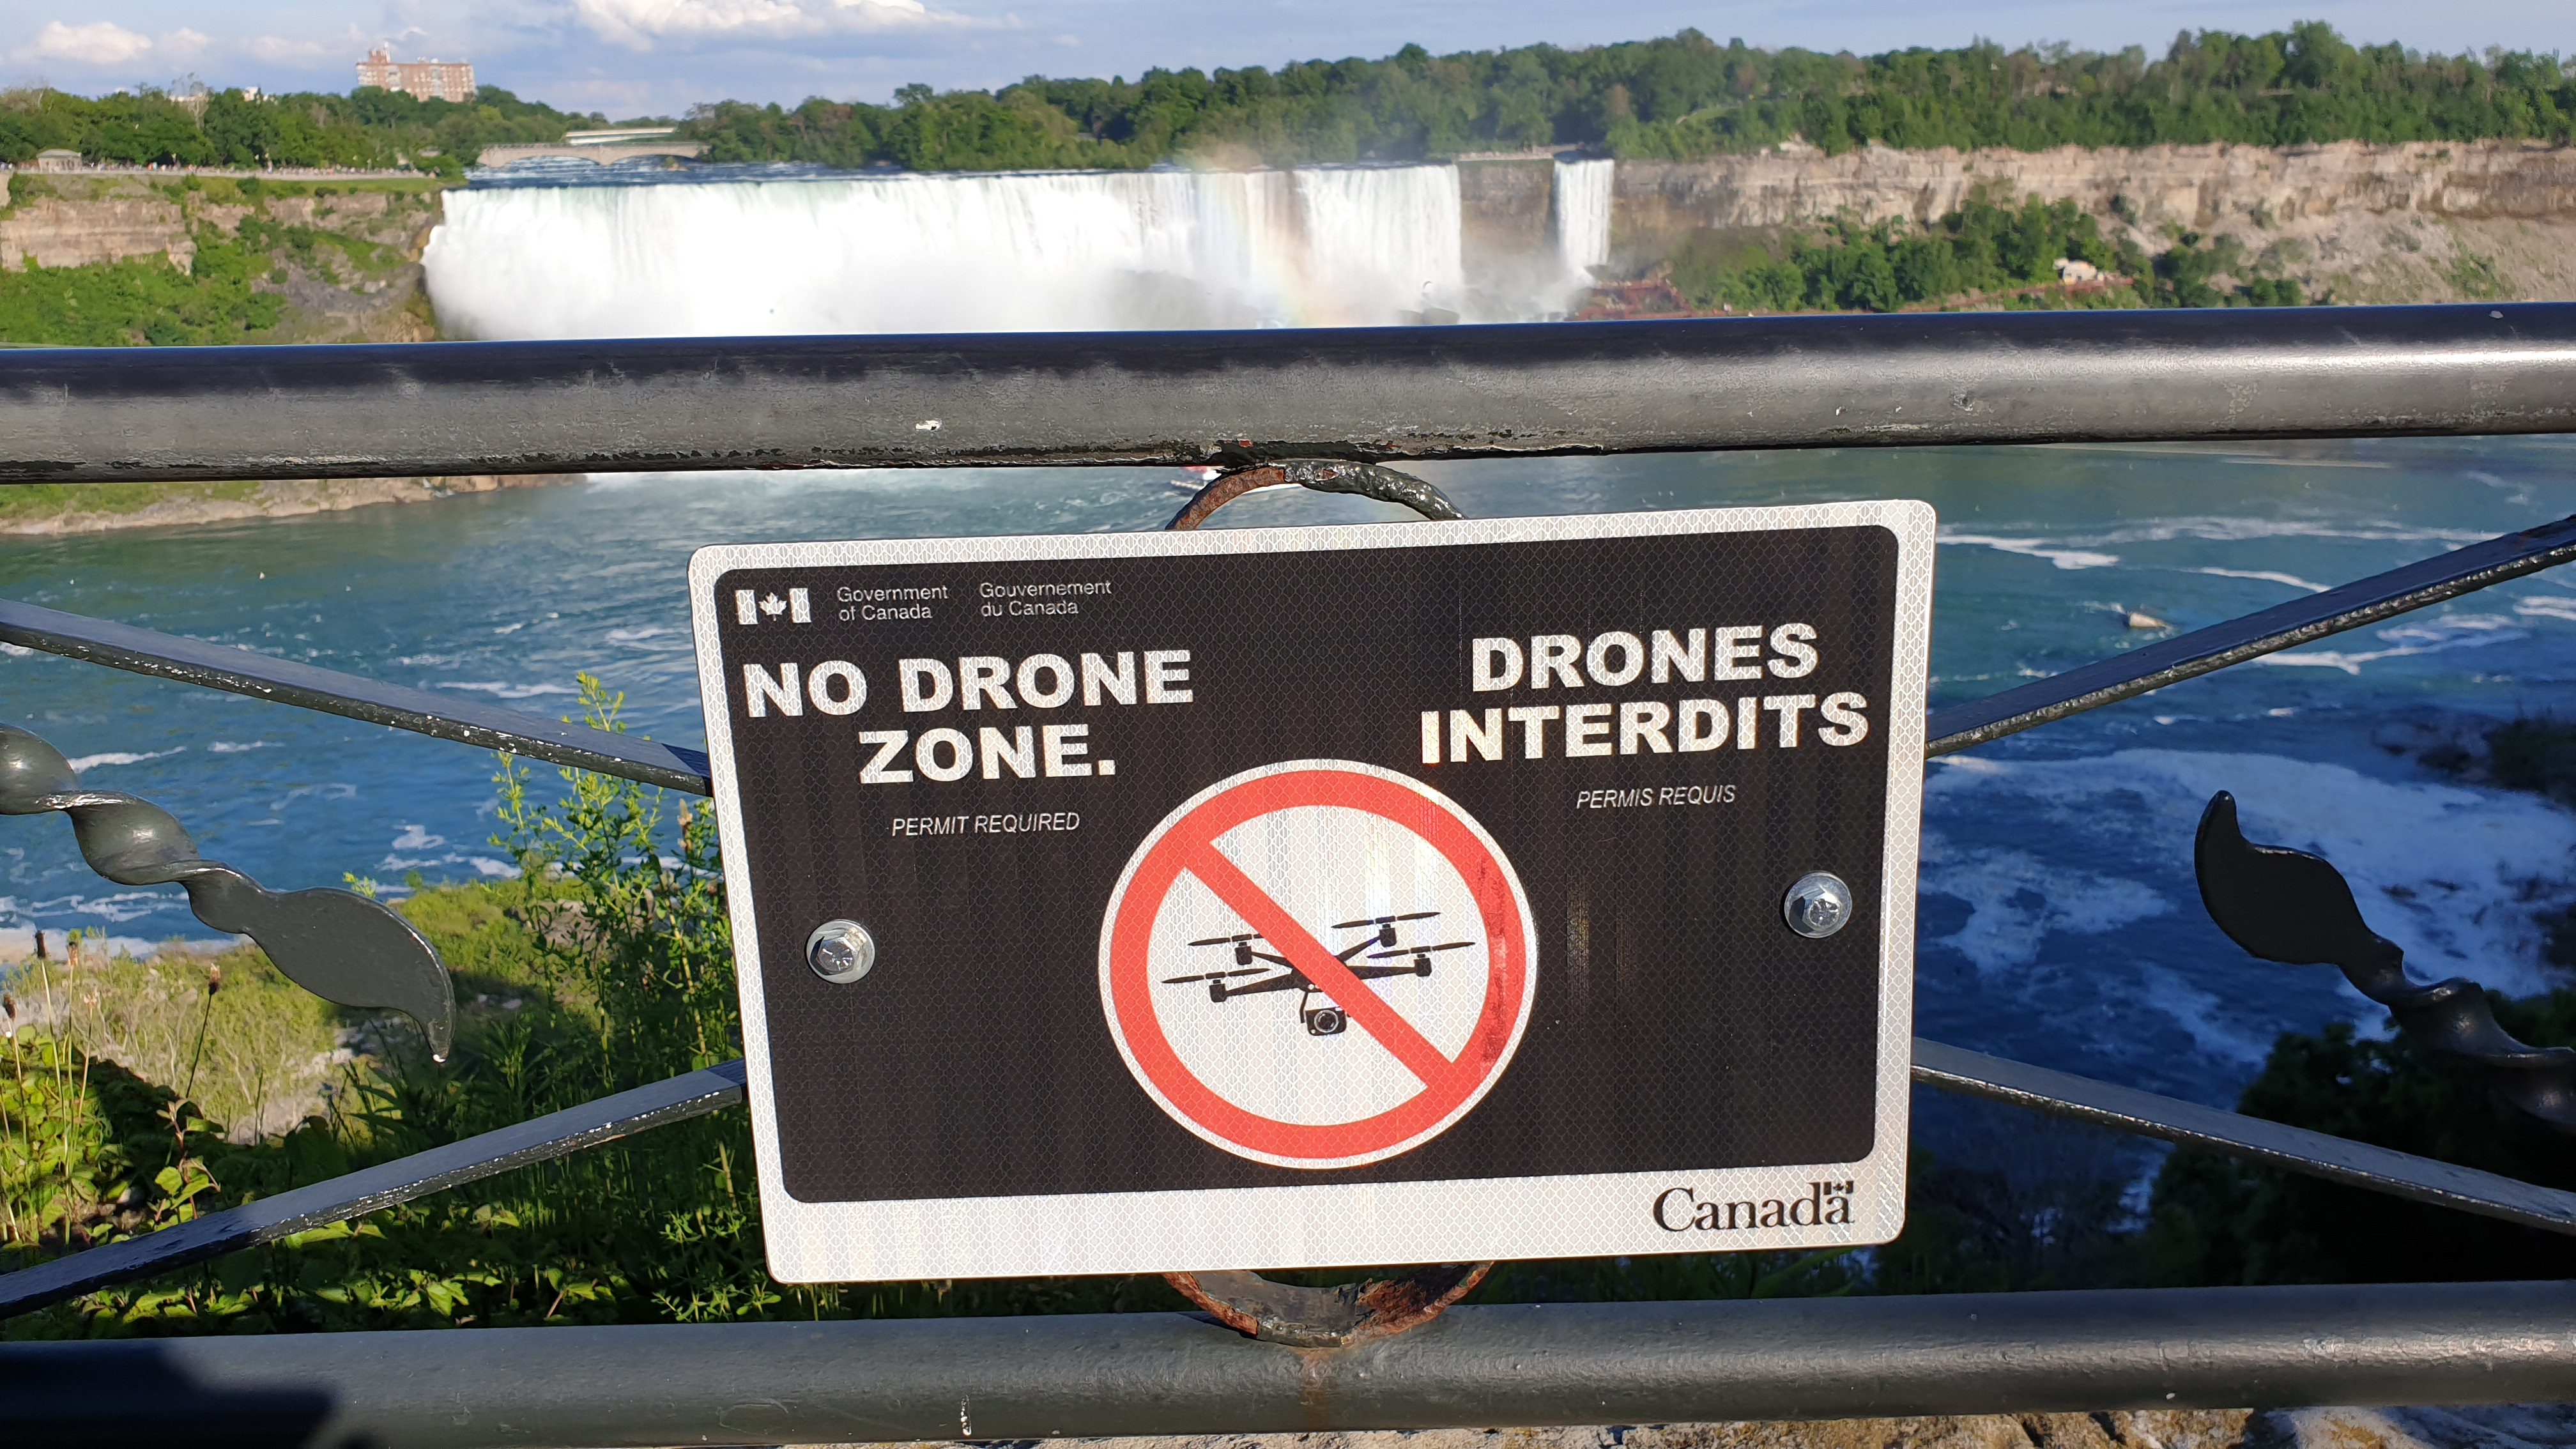 No Drone Zone sign at Niagara Falls